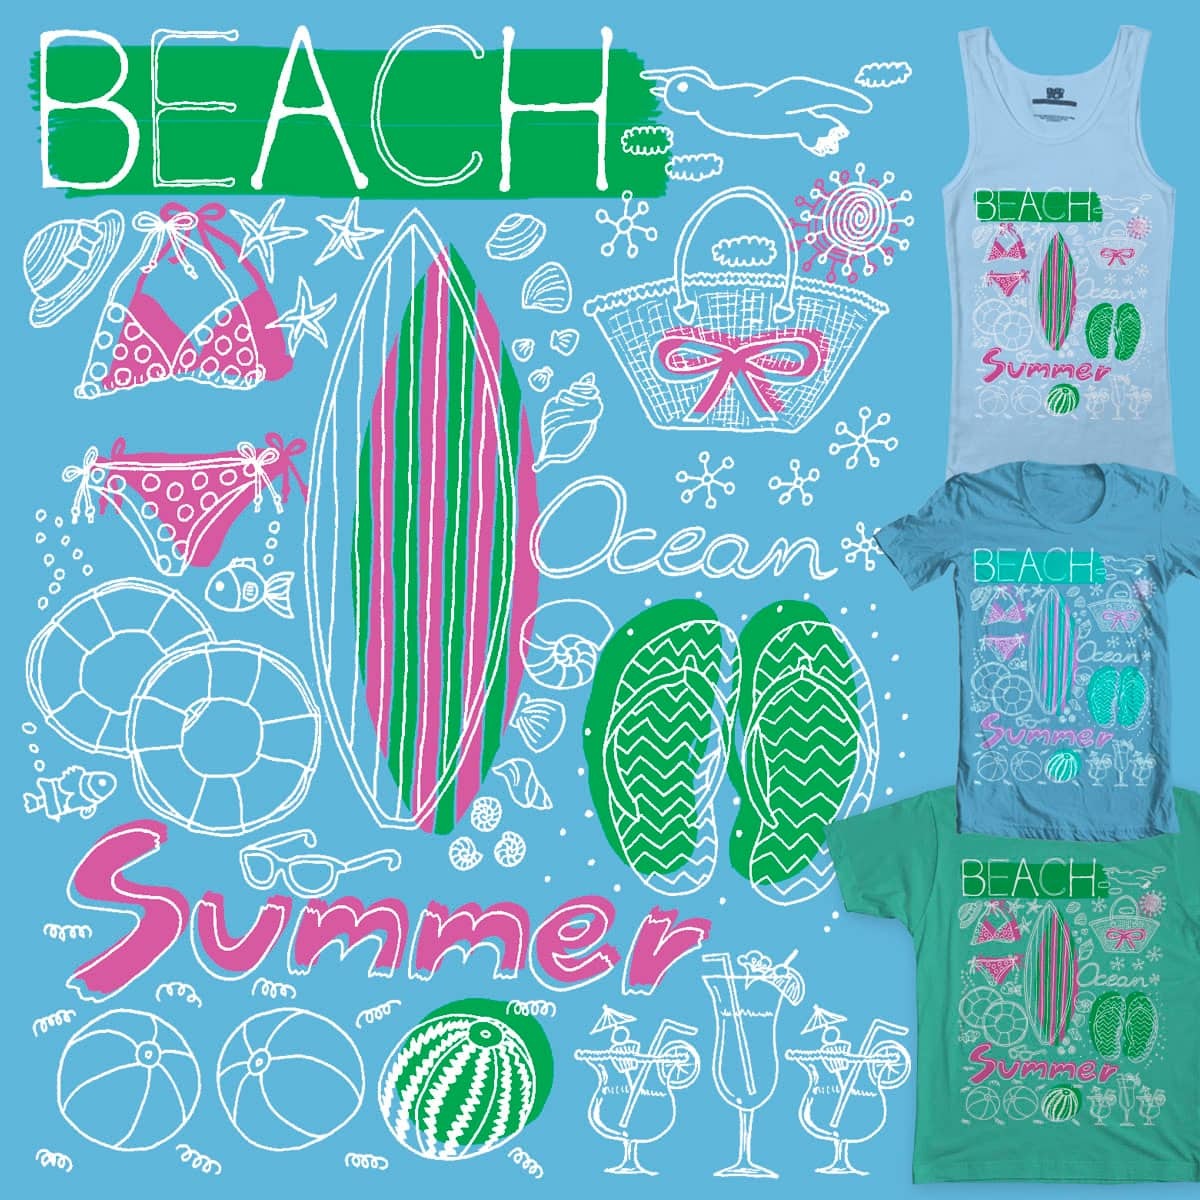 Things to do this summer by mintkirai on Threadless